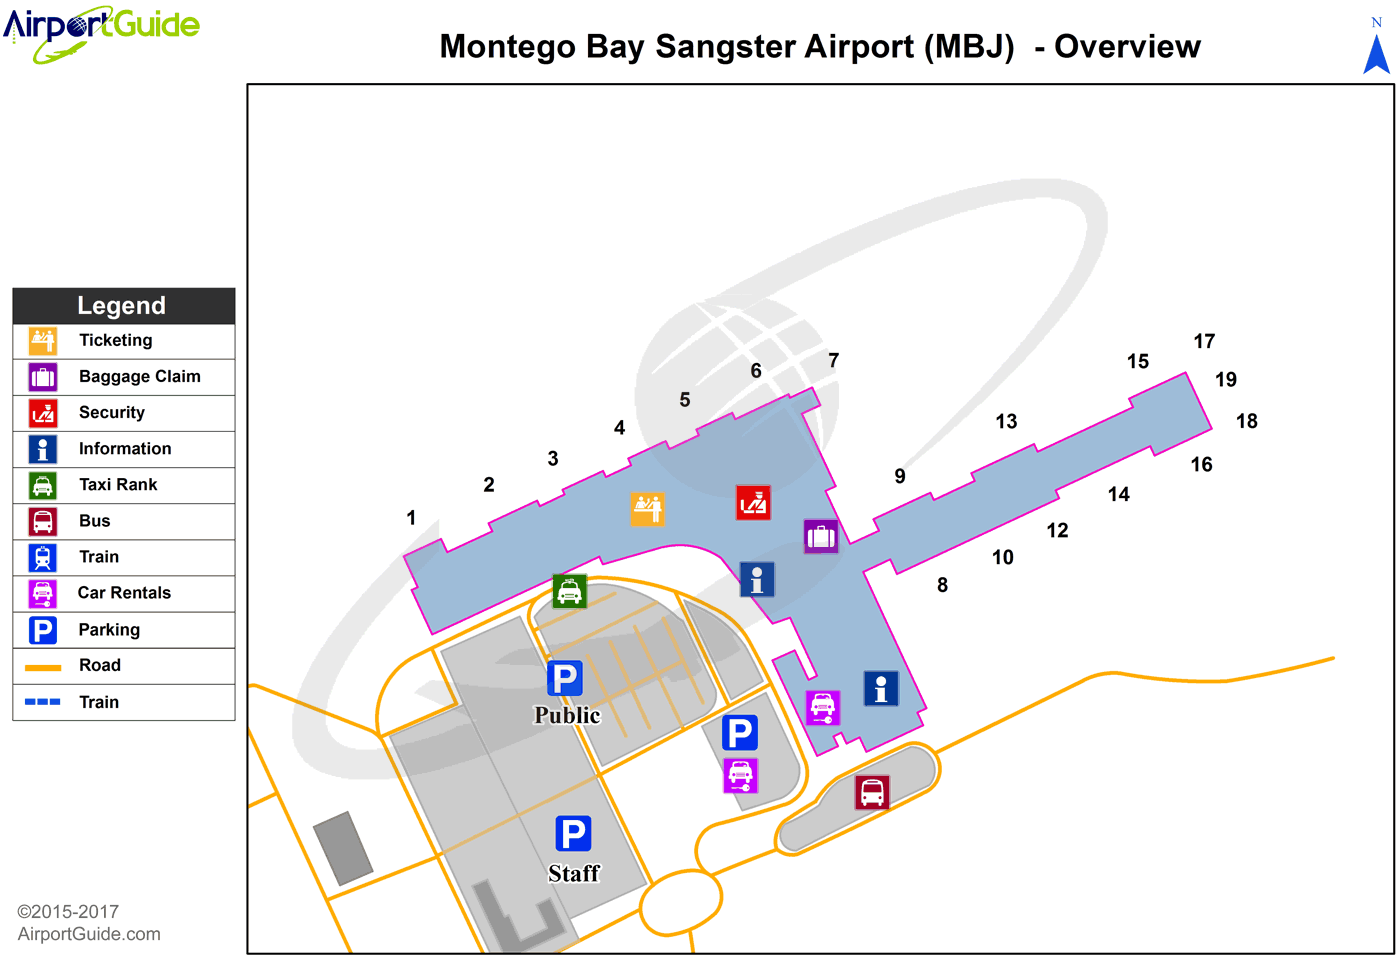 montego bay  sangster international (mbj) airport terminal map  overview. montego bay  sangster international (mbj) airport terminal map